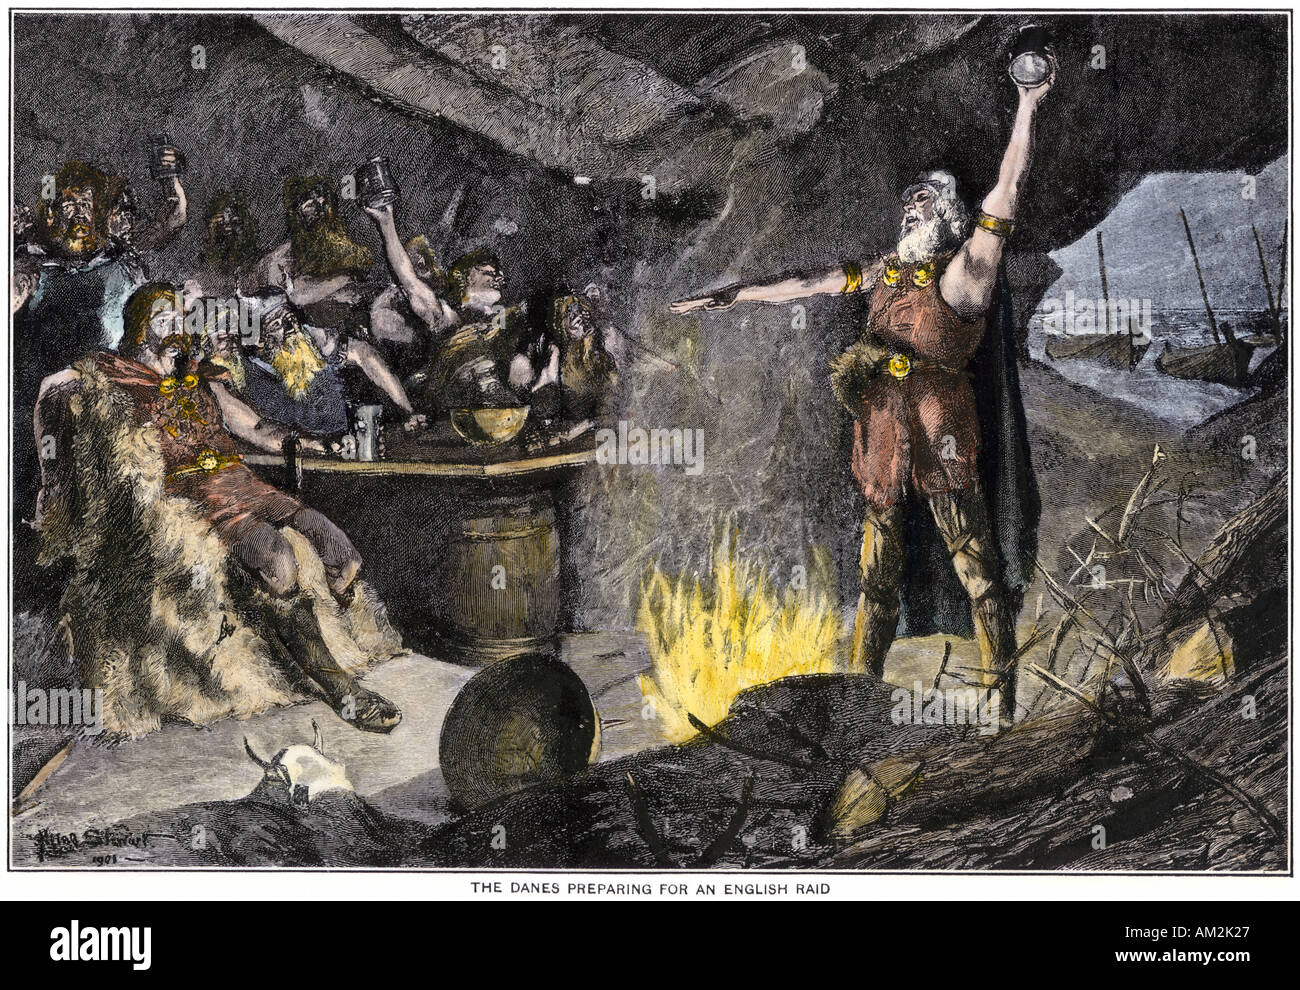 Danish Vikings preparing for a raid on the British coast. Hand-colored halftone of an illustration - Stock Image